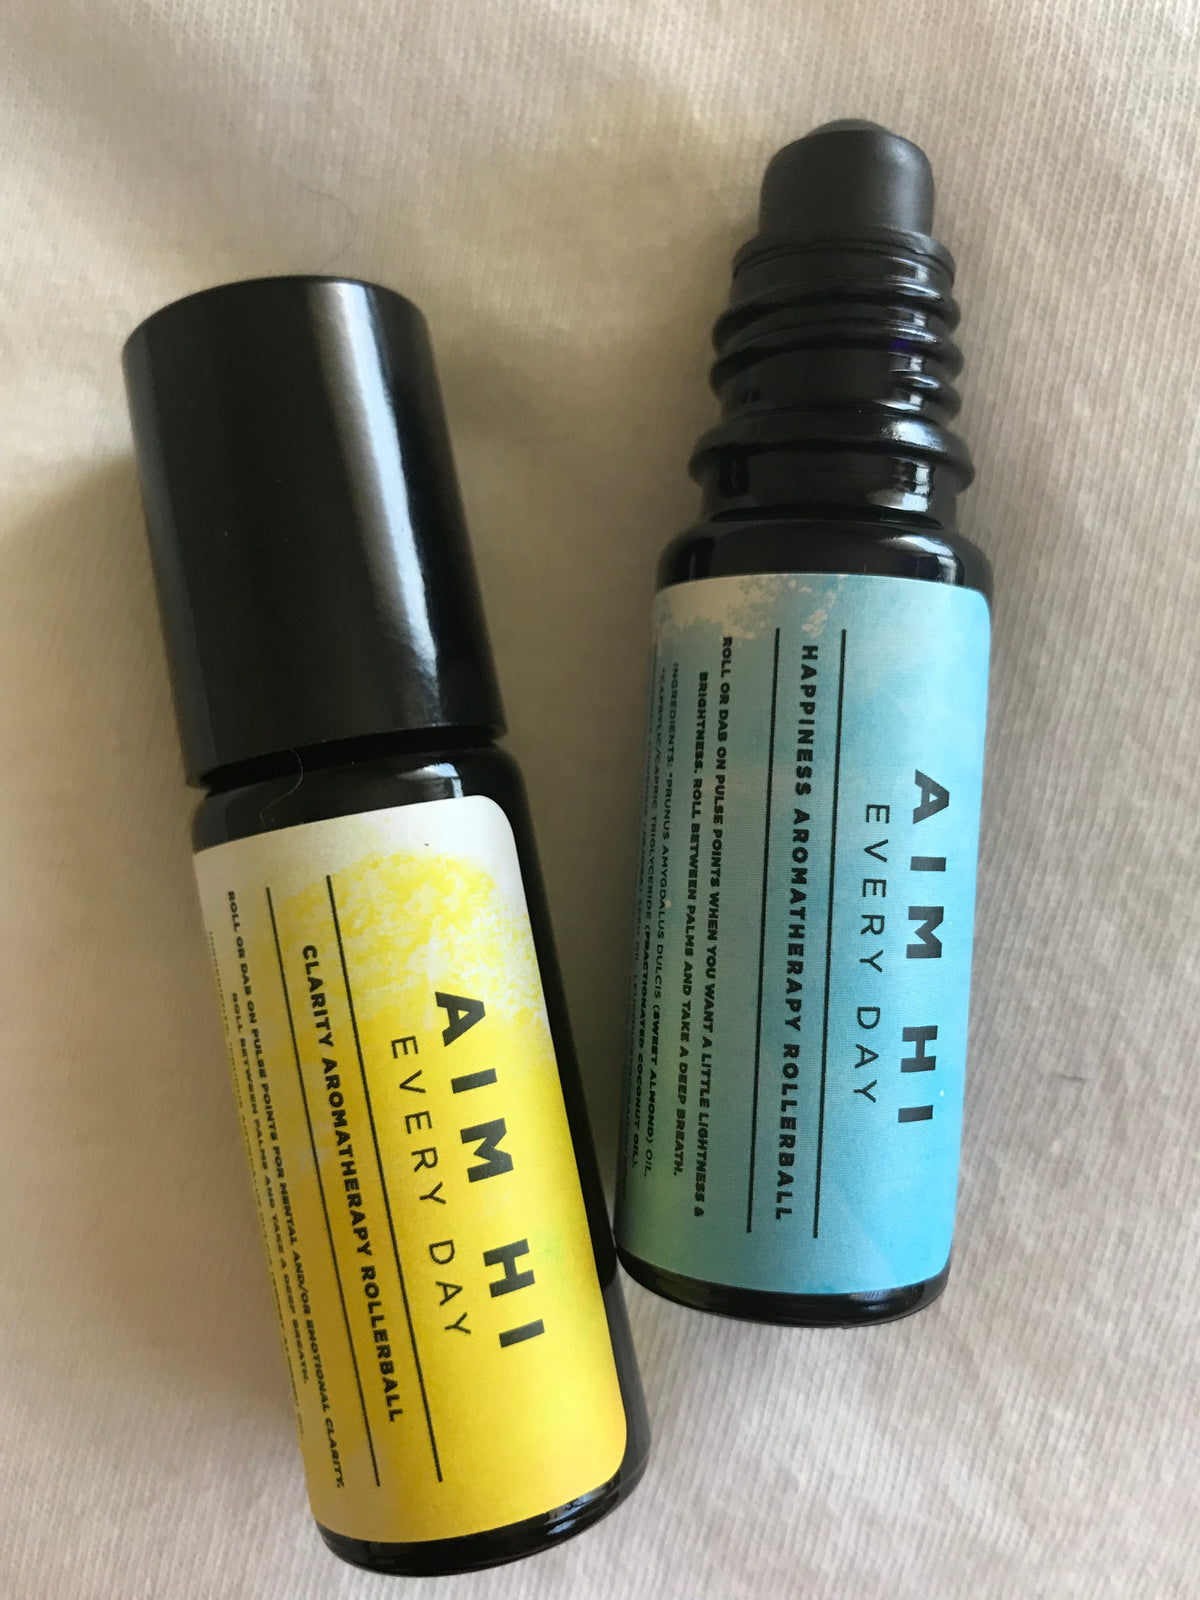 CLARITY AROMATHERAPY ROLLERBALL